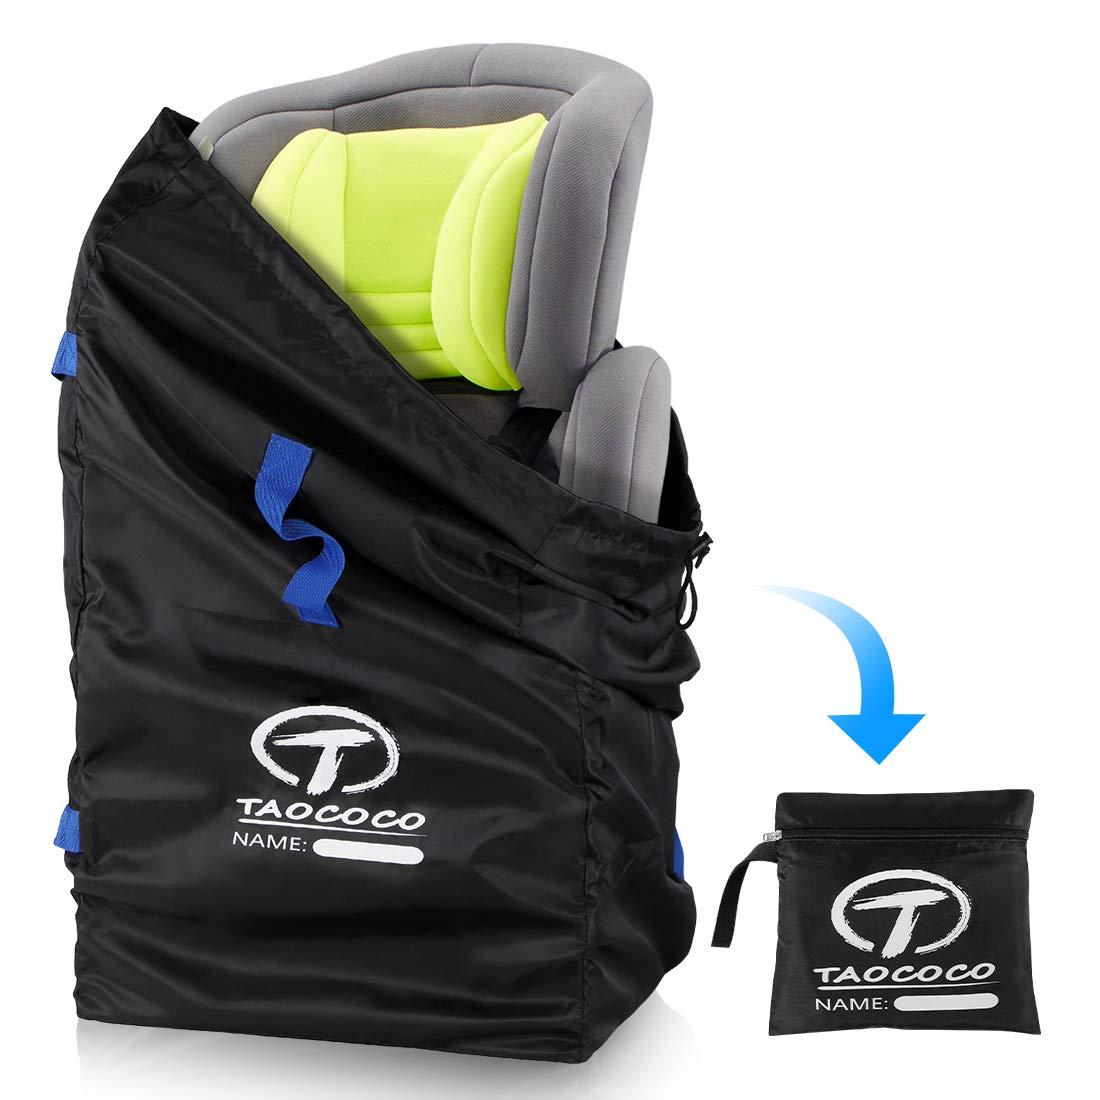 TAOCOCO Car Seat Travel Bag Backpack for Air Travel - Gate Check Bag for Family Travel with Baby, Airline Easy Carry Stroller Carseat Bag Childress Gate Check Bag for Car Seats